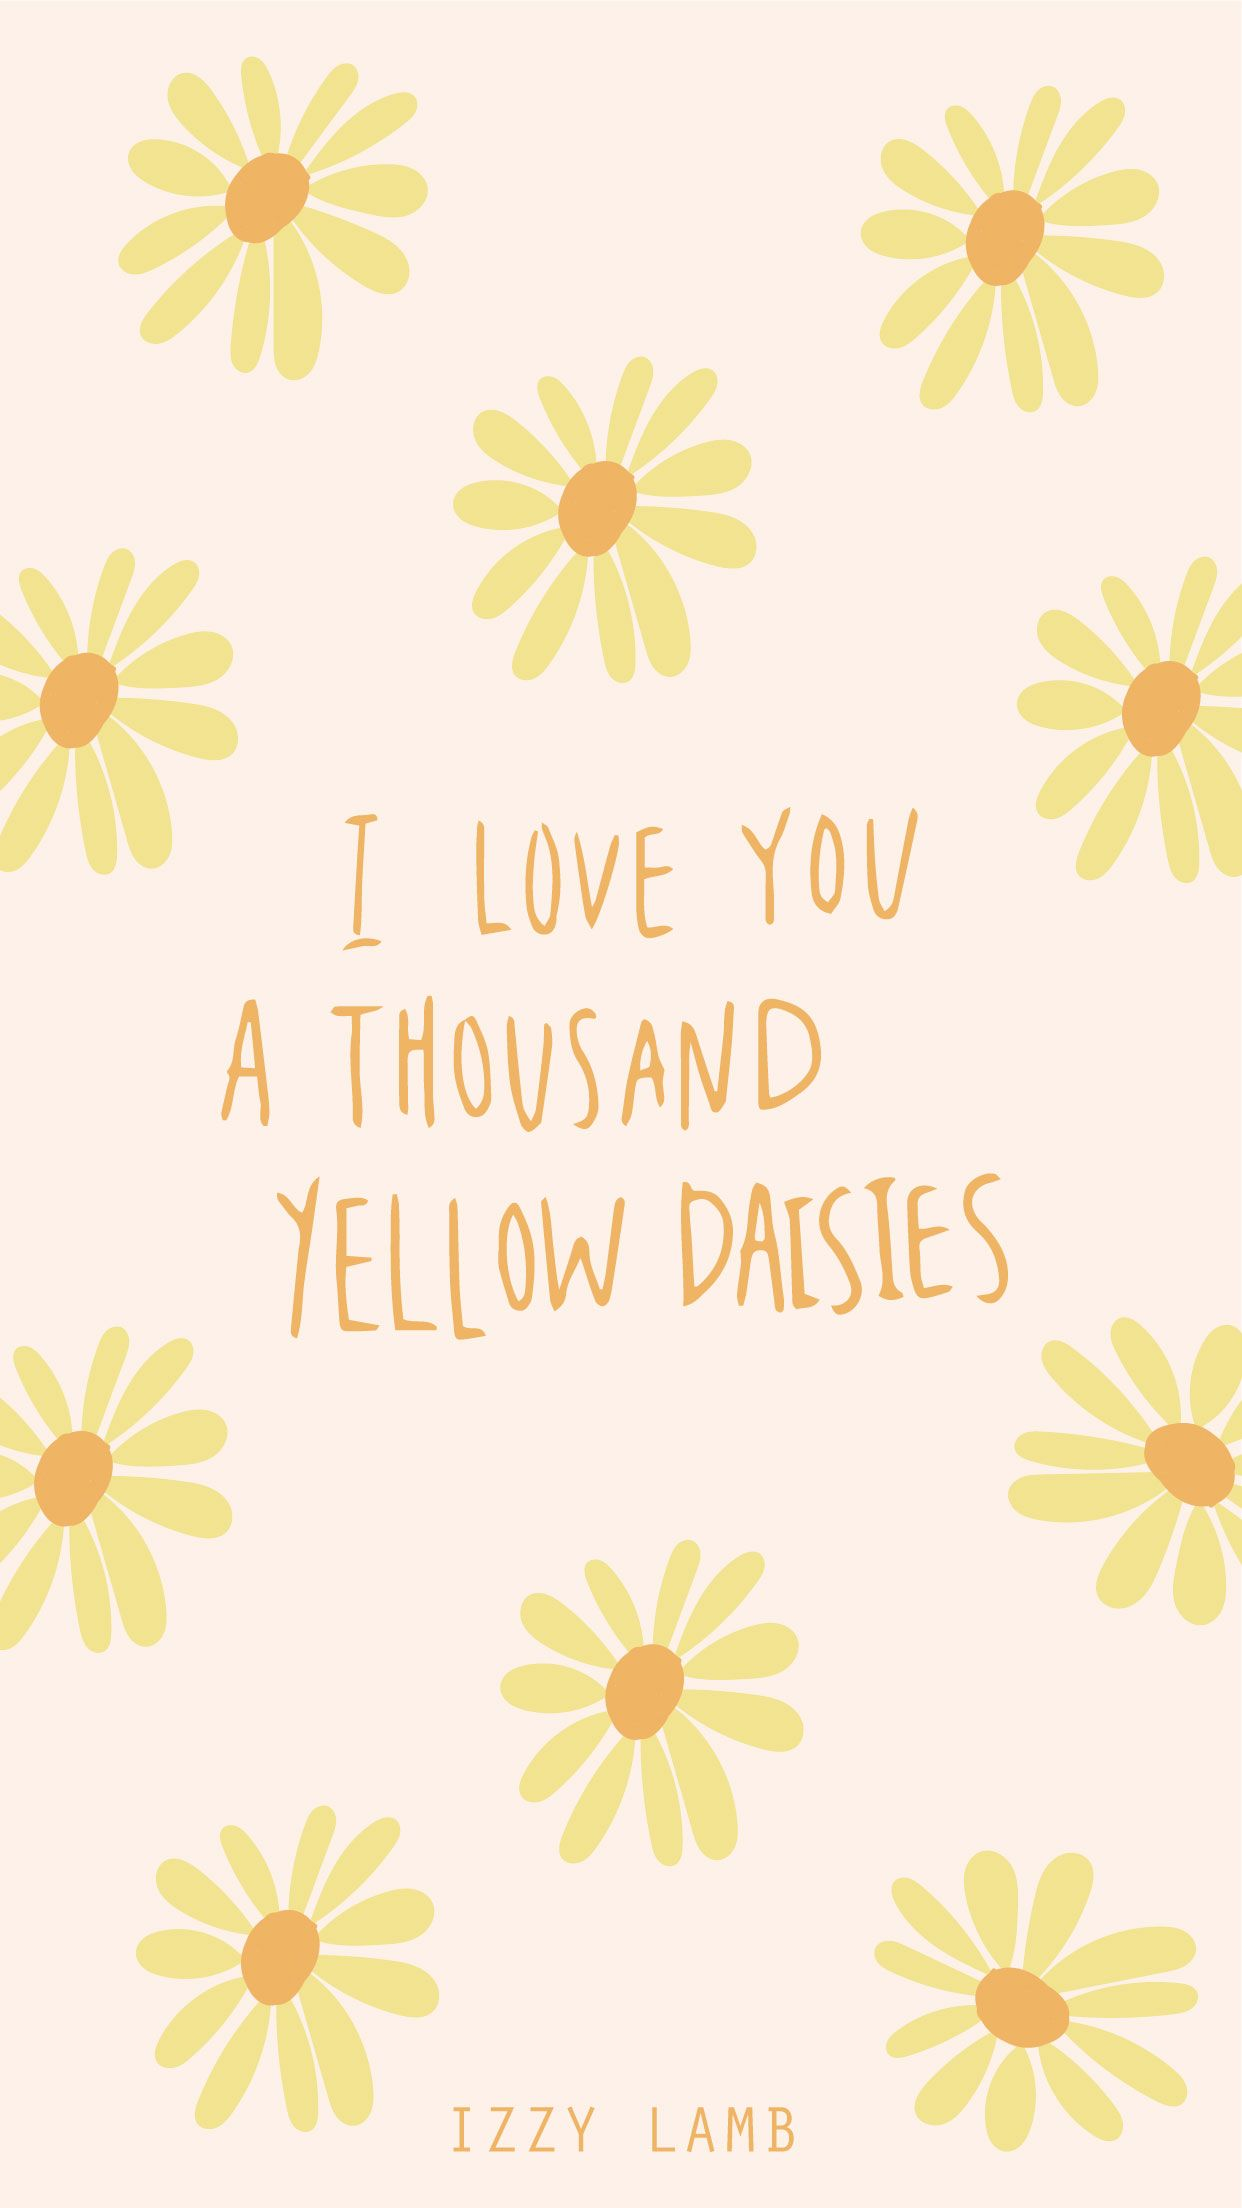 i love you a thousand yellow daisies wallpaper gilmore